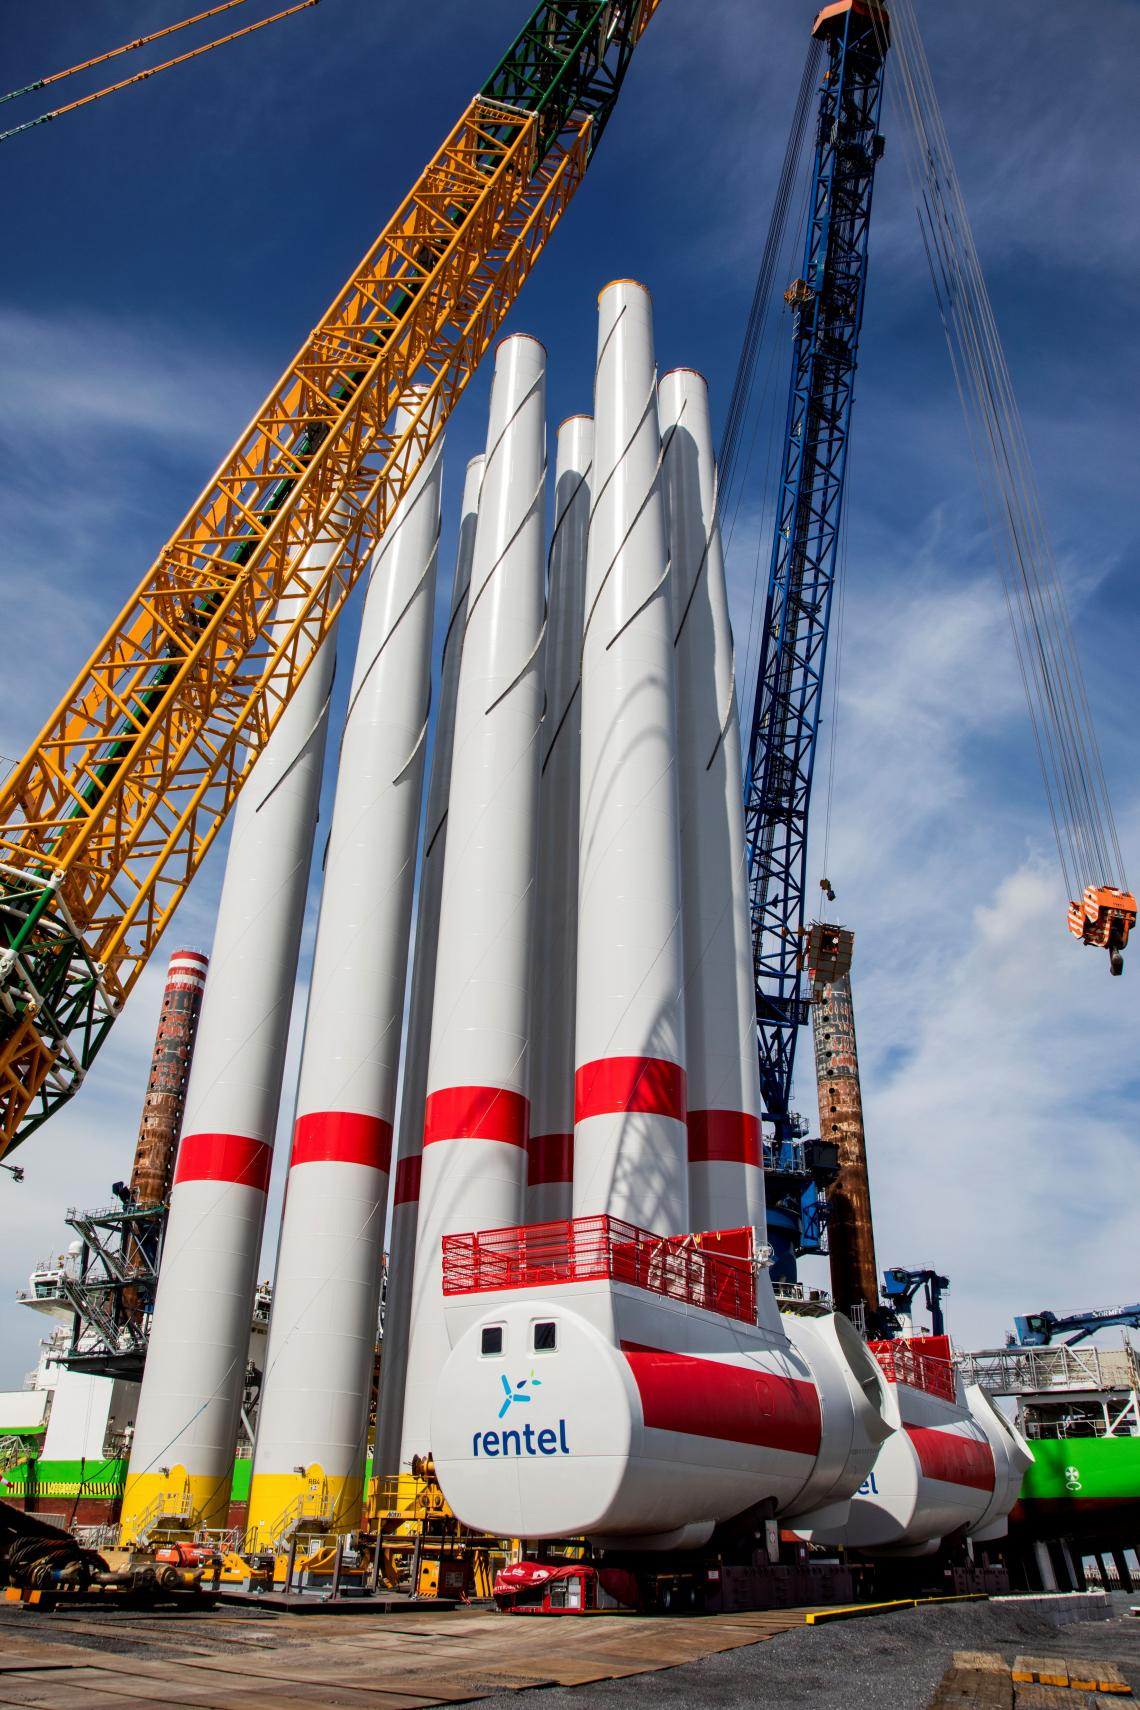 Pipes for Rentel Offshore wind farm